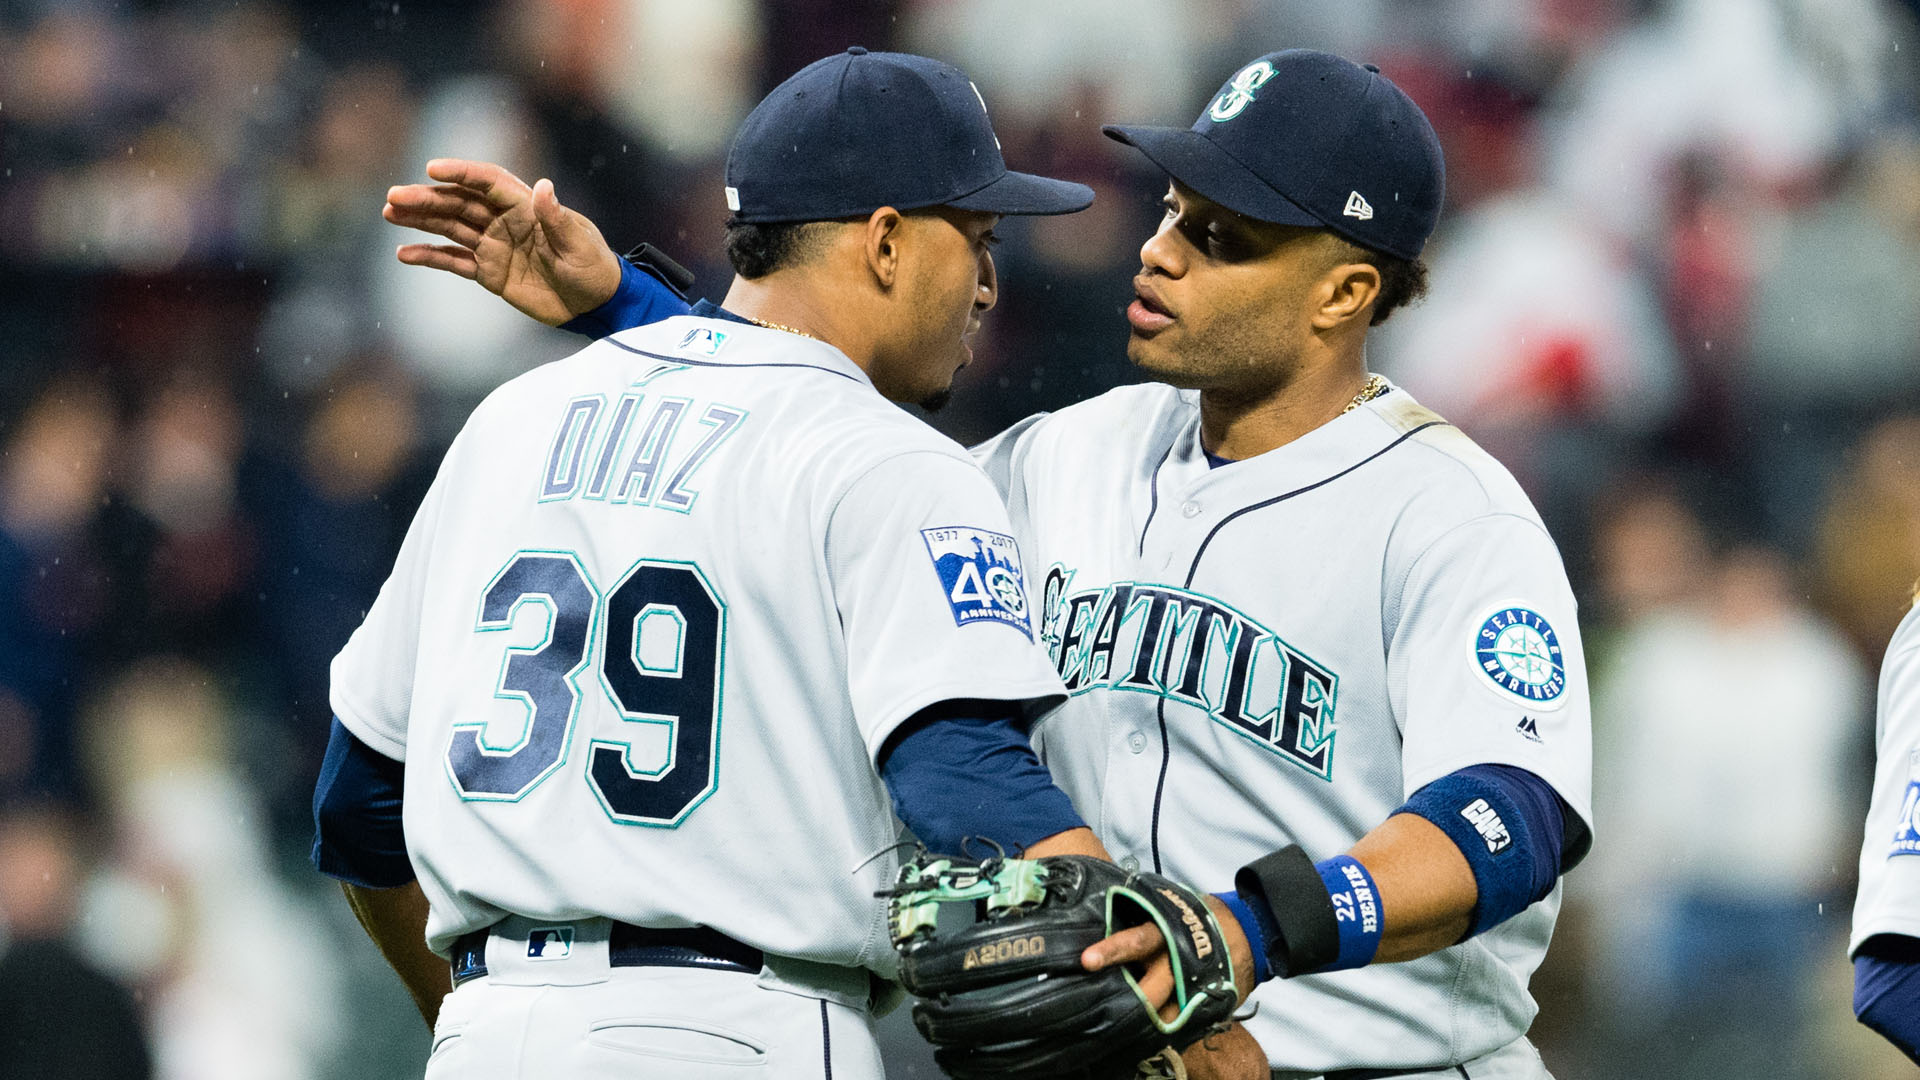 Talks Getting Serious Between Mets, Mariners For Trade Involving Cano, Diaz